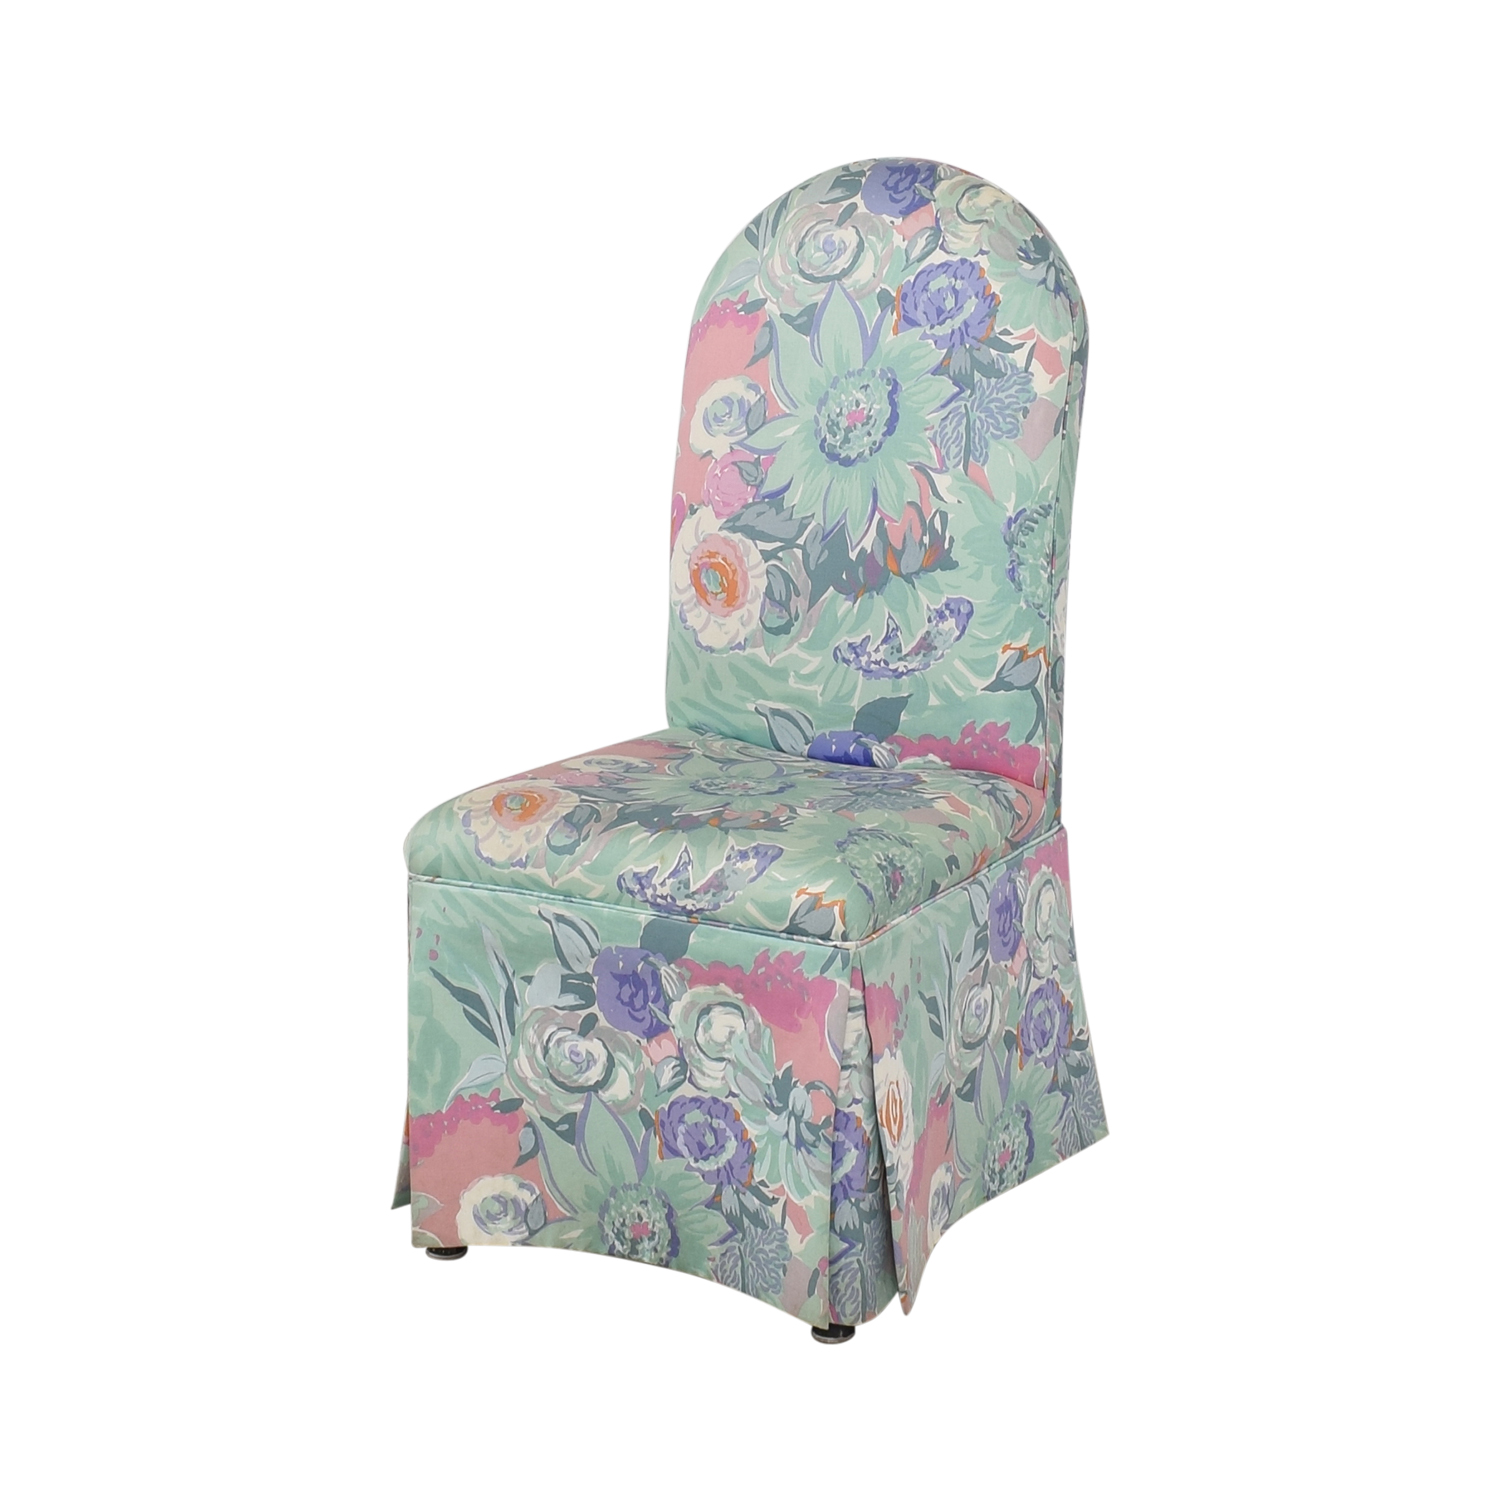 Preview Furniture David L. James Armless Dining Chairs Preview Furniture